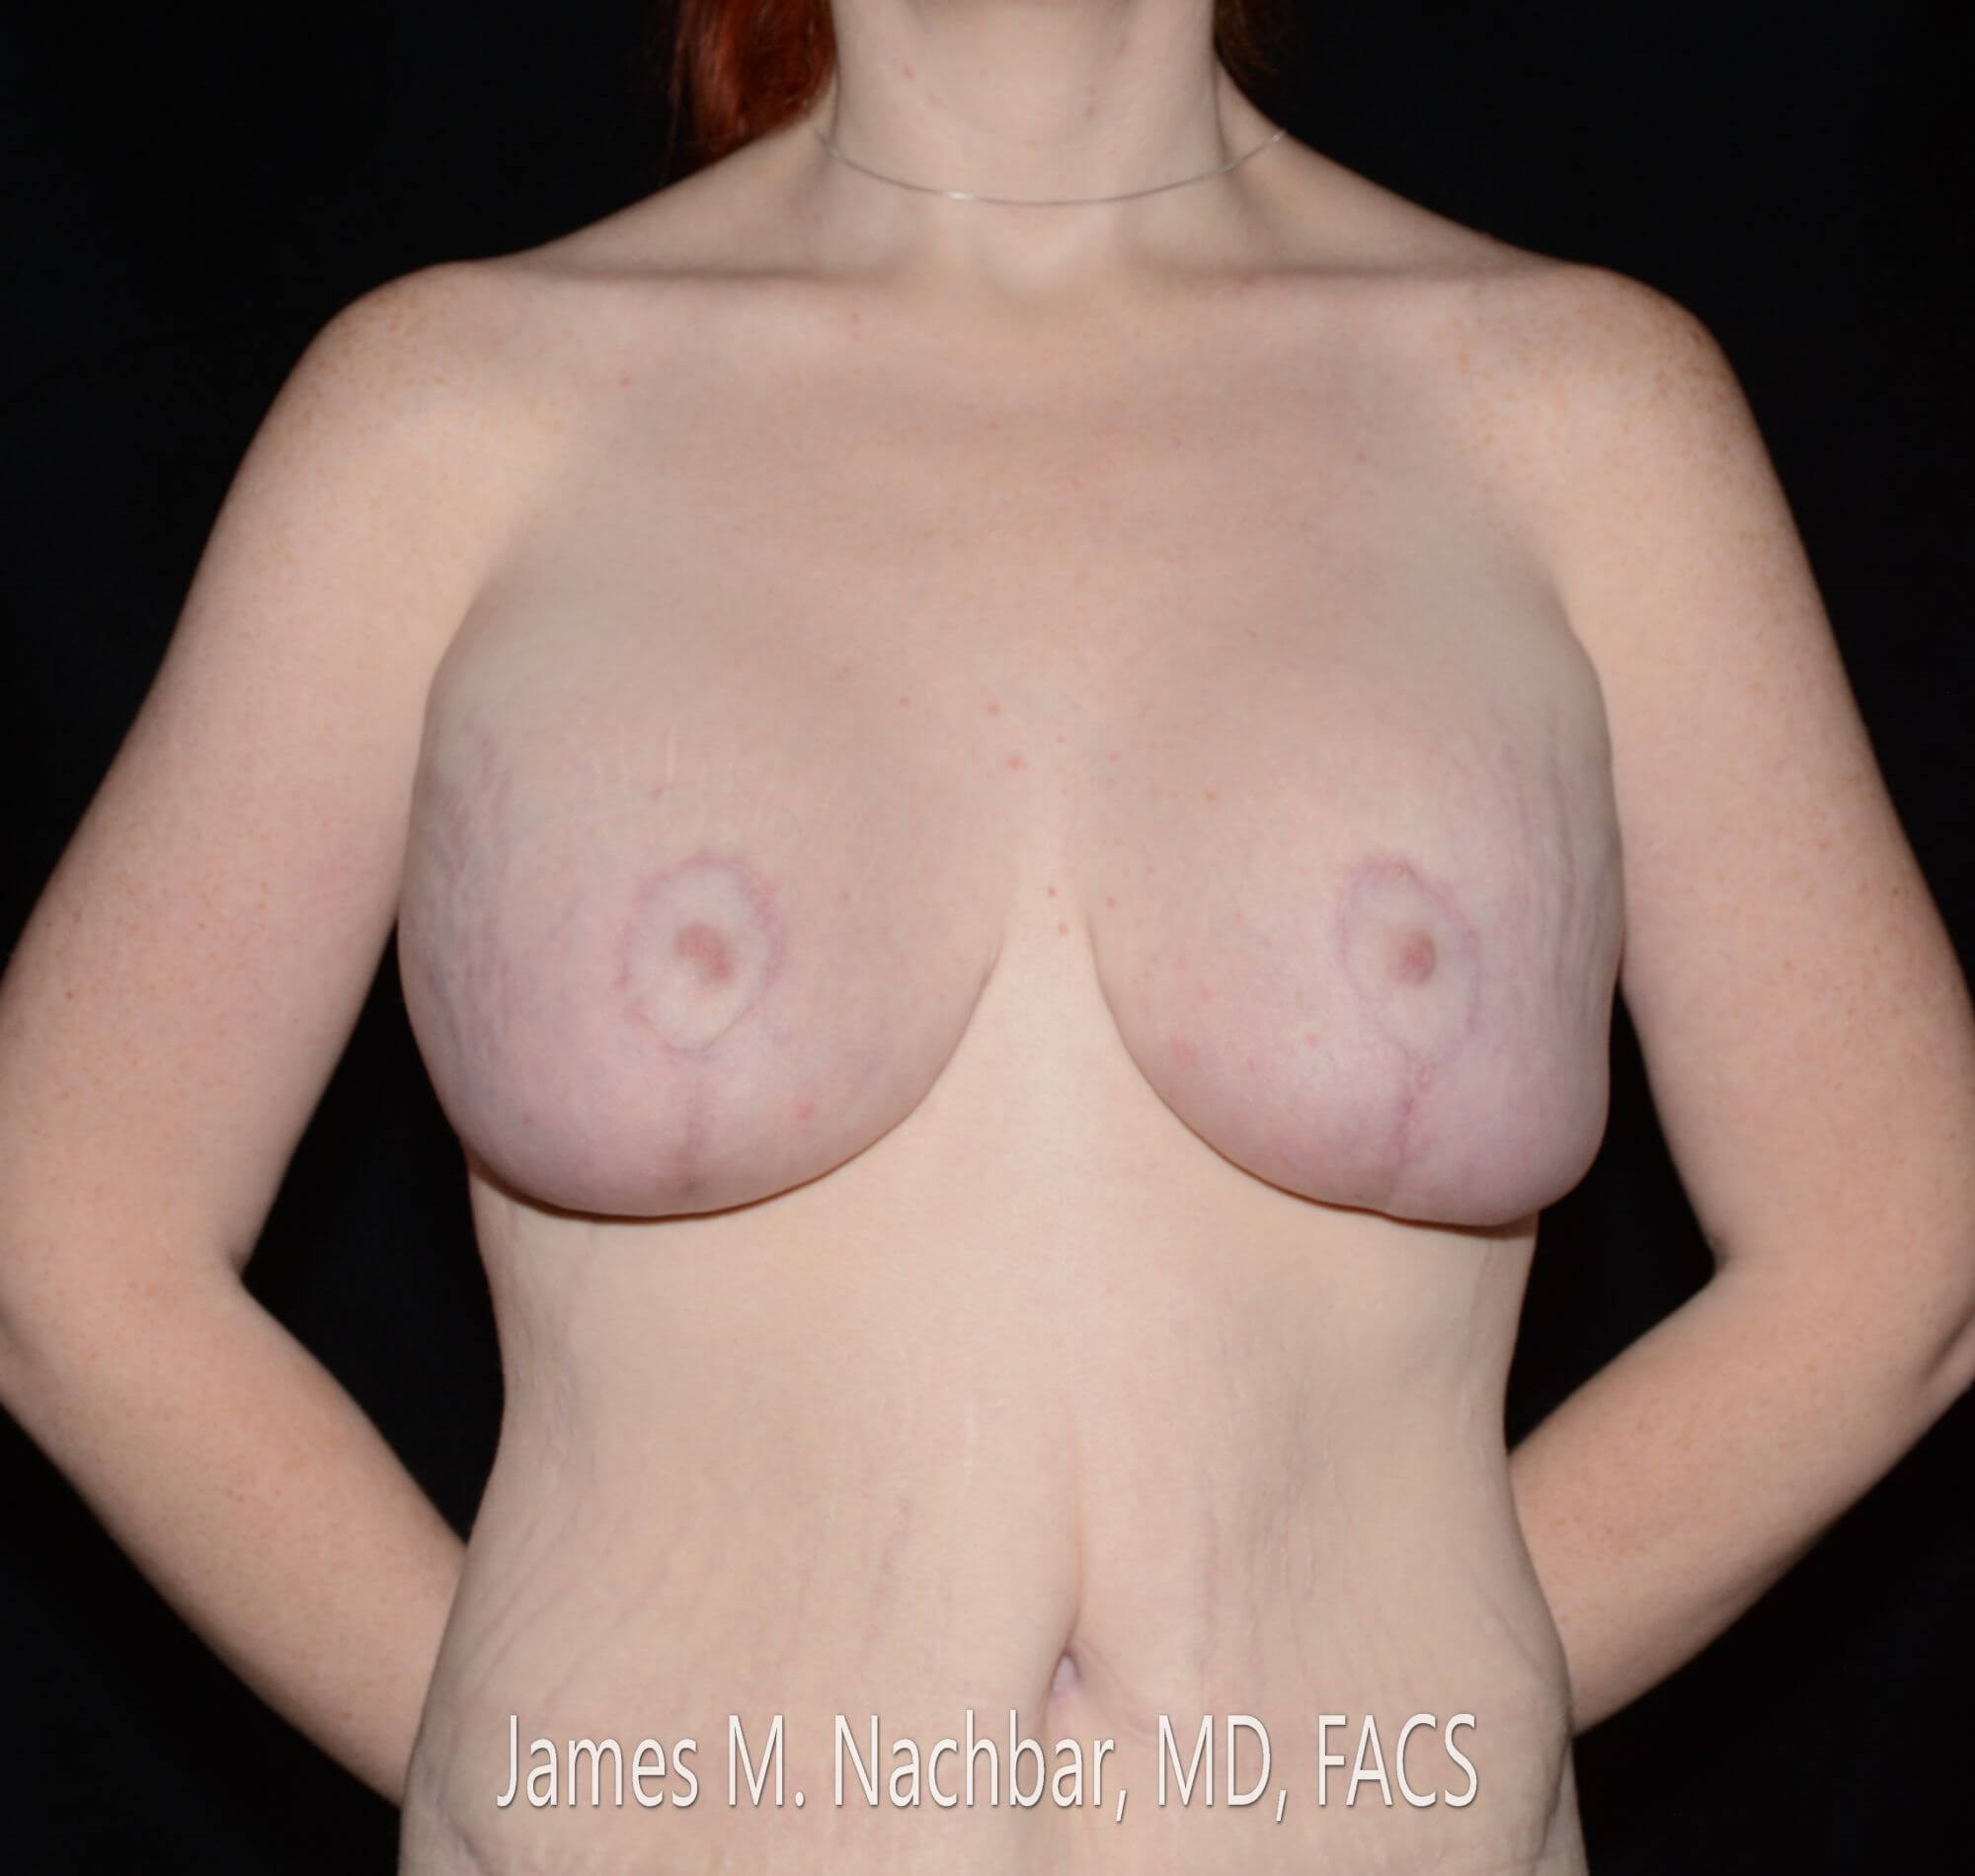 Front View Breast 3 Months After